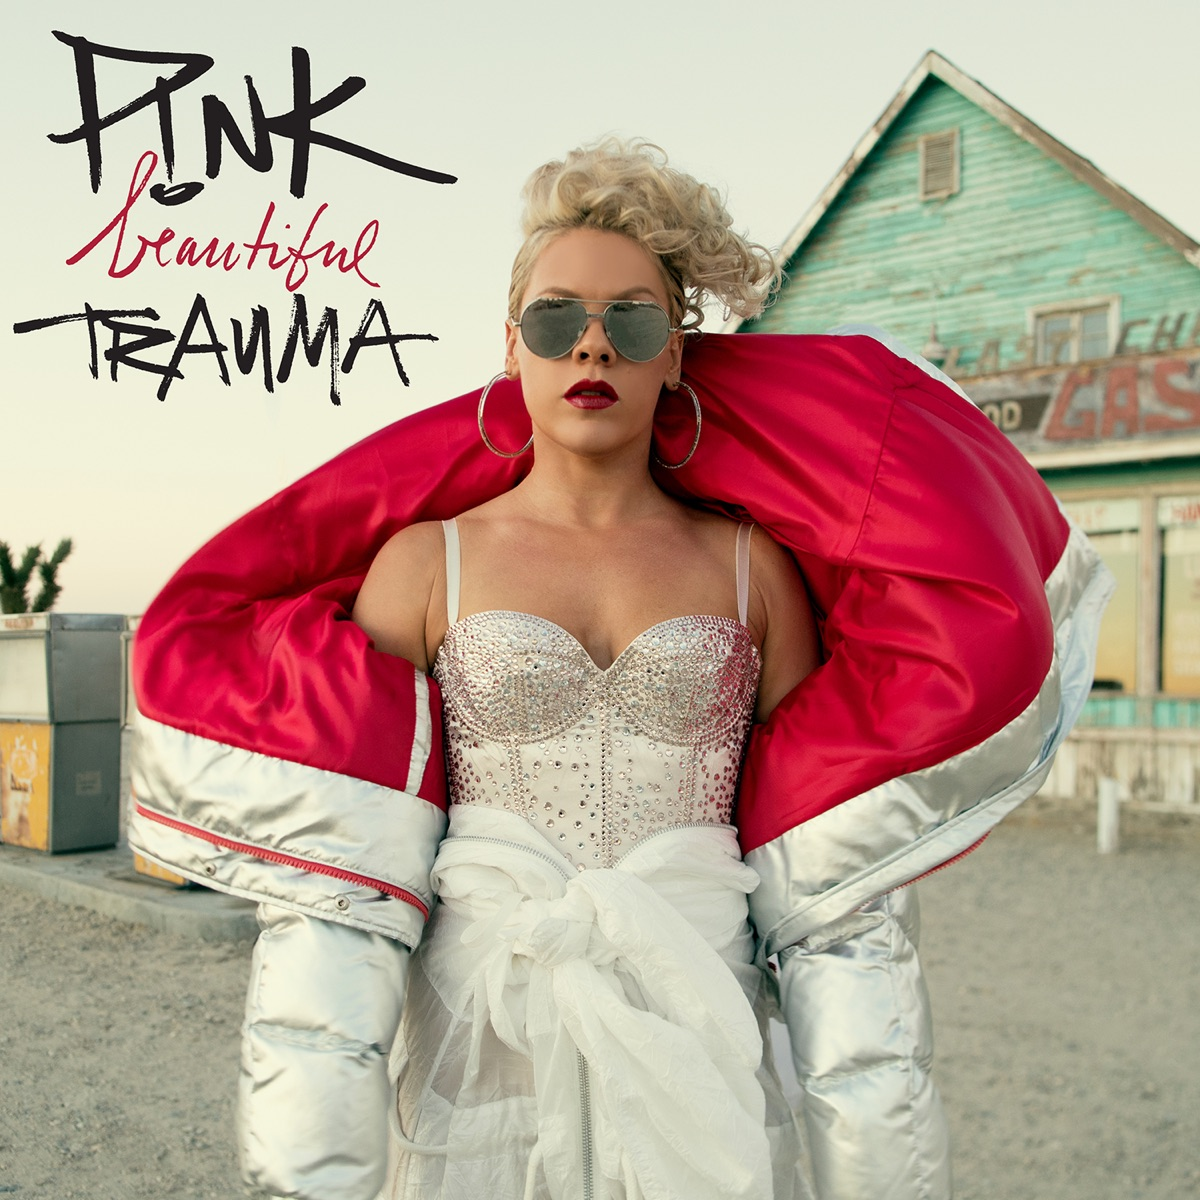 Beautiful Trauma Pnk CD cover